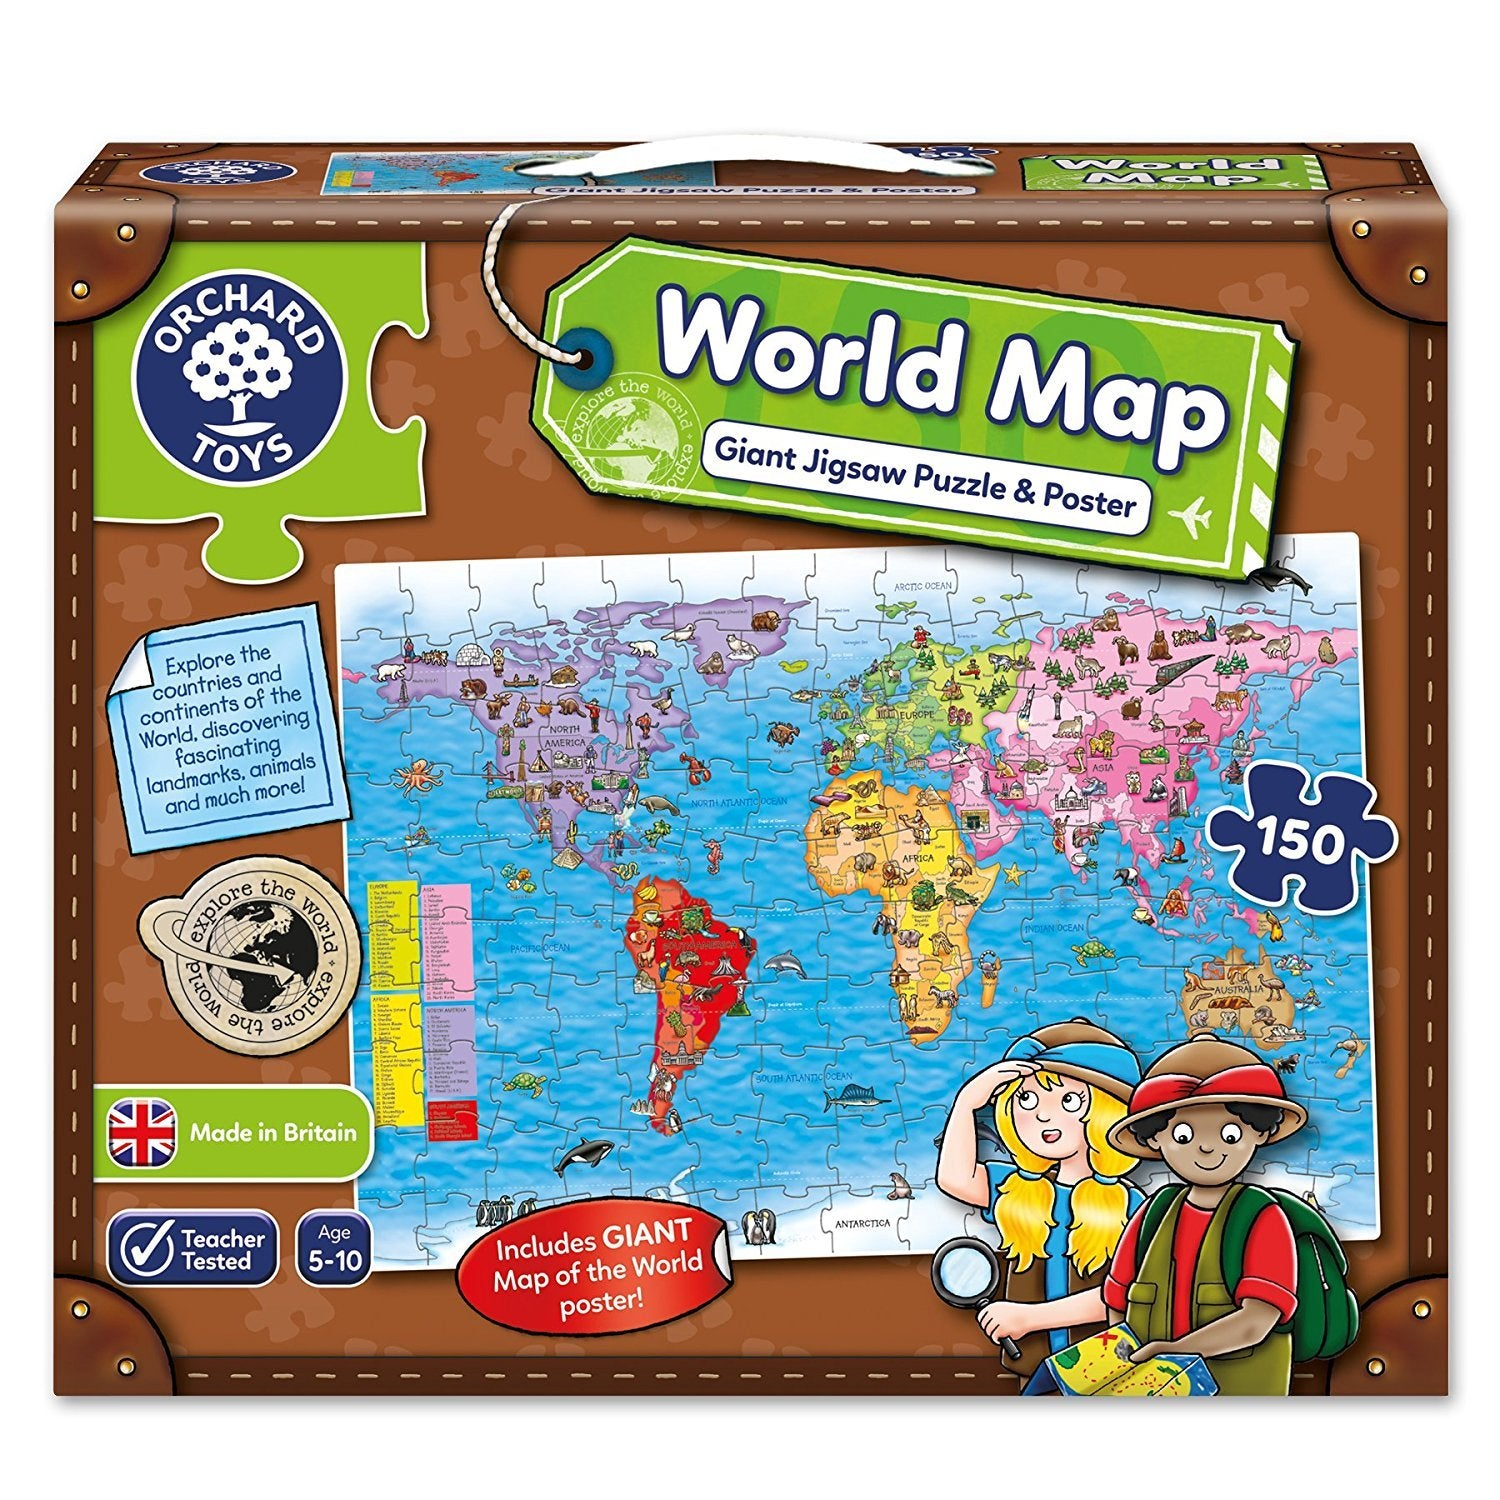 Orchard Jigsaw - World Map Puzzle & Poster 150pc   Grace Baby on persecuted church world map, remnant world map, pillars world map, birthright world map, zen world map, thera world map, christian persecution world map, evil world map, divinity world map, golden horn world map, sanctuary world map, sarai world map, alo world map, sunni world map, opal world map, zara world map, imagination world map, elmina world map, solomon world map, galilee world map,